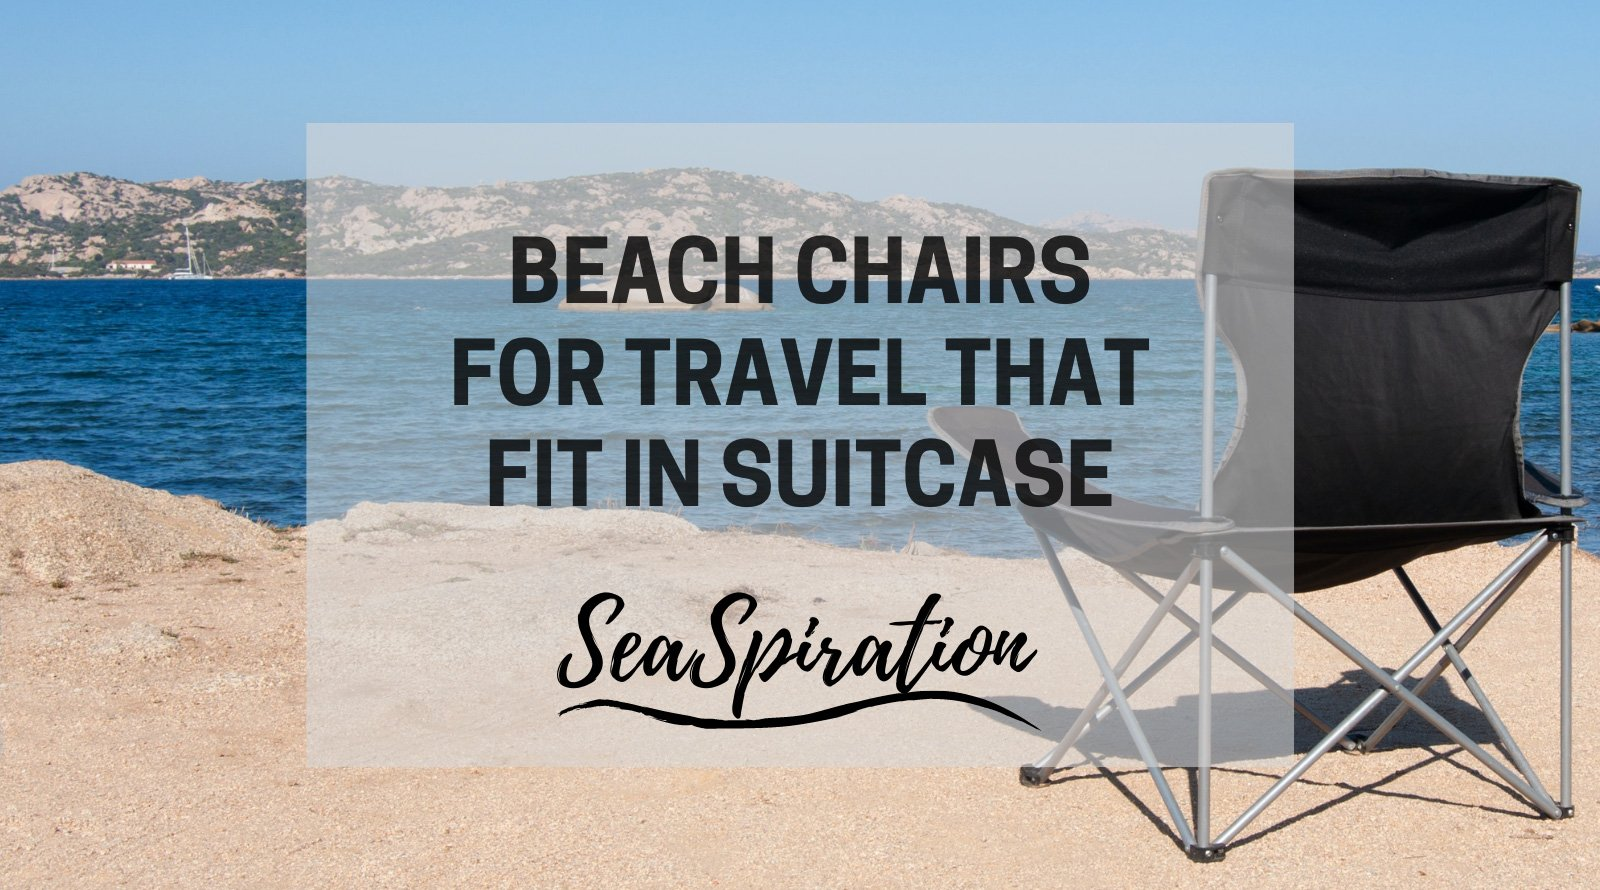 Beach chair that fits in suitcase